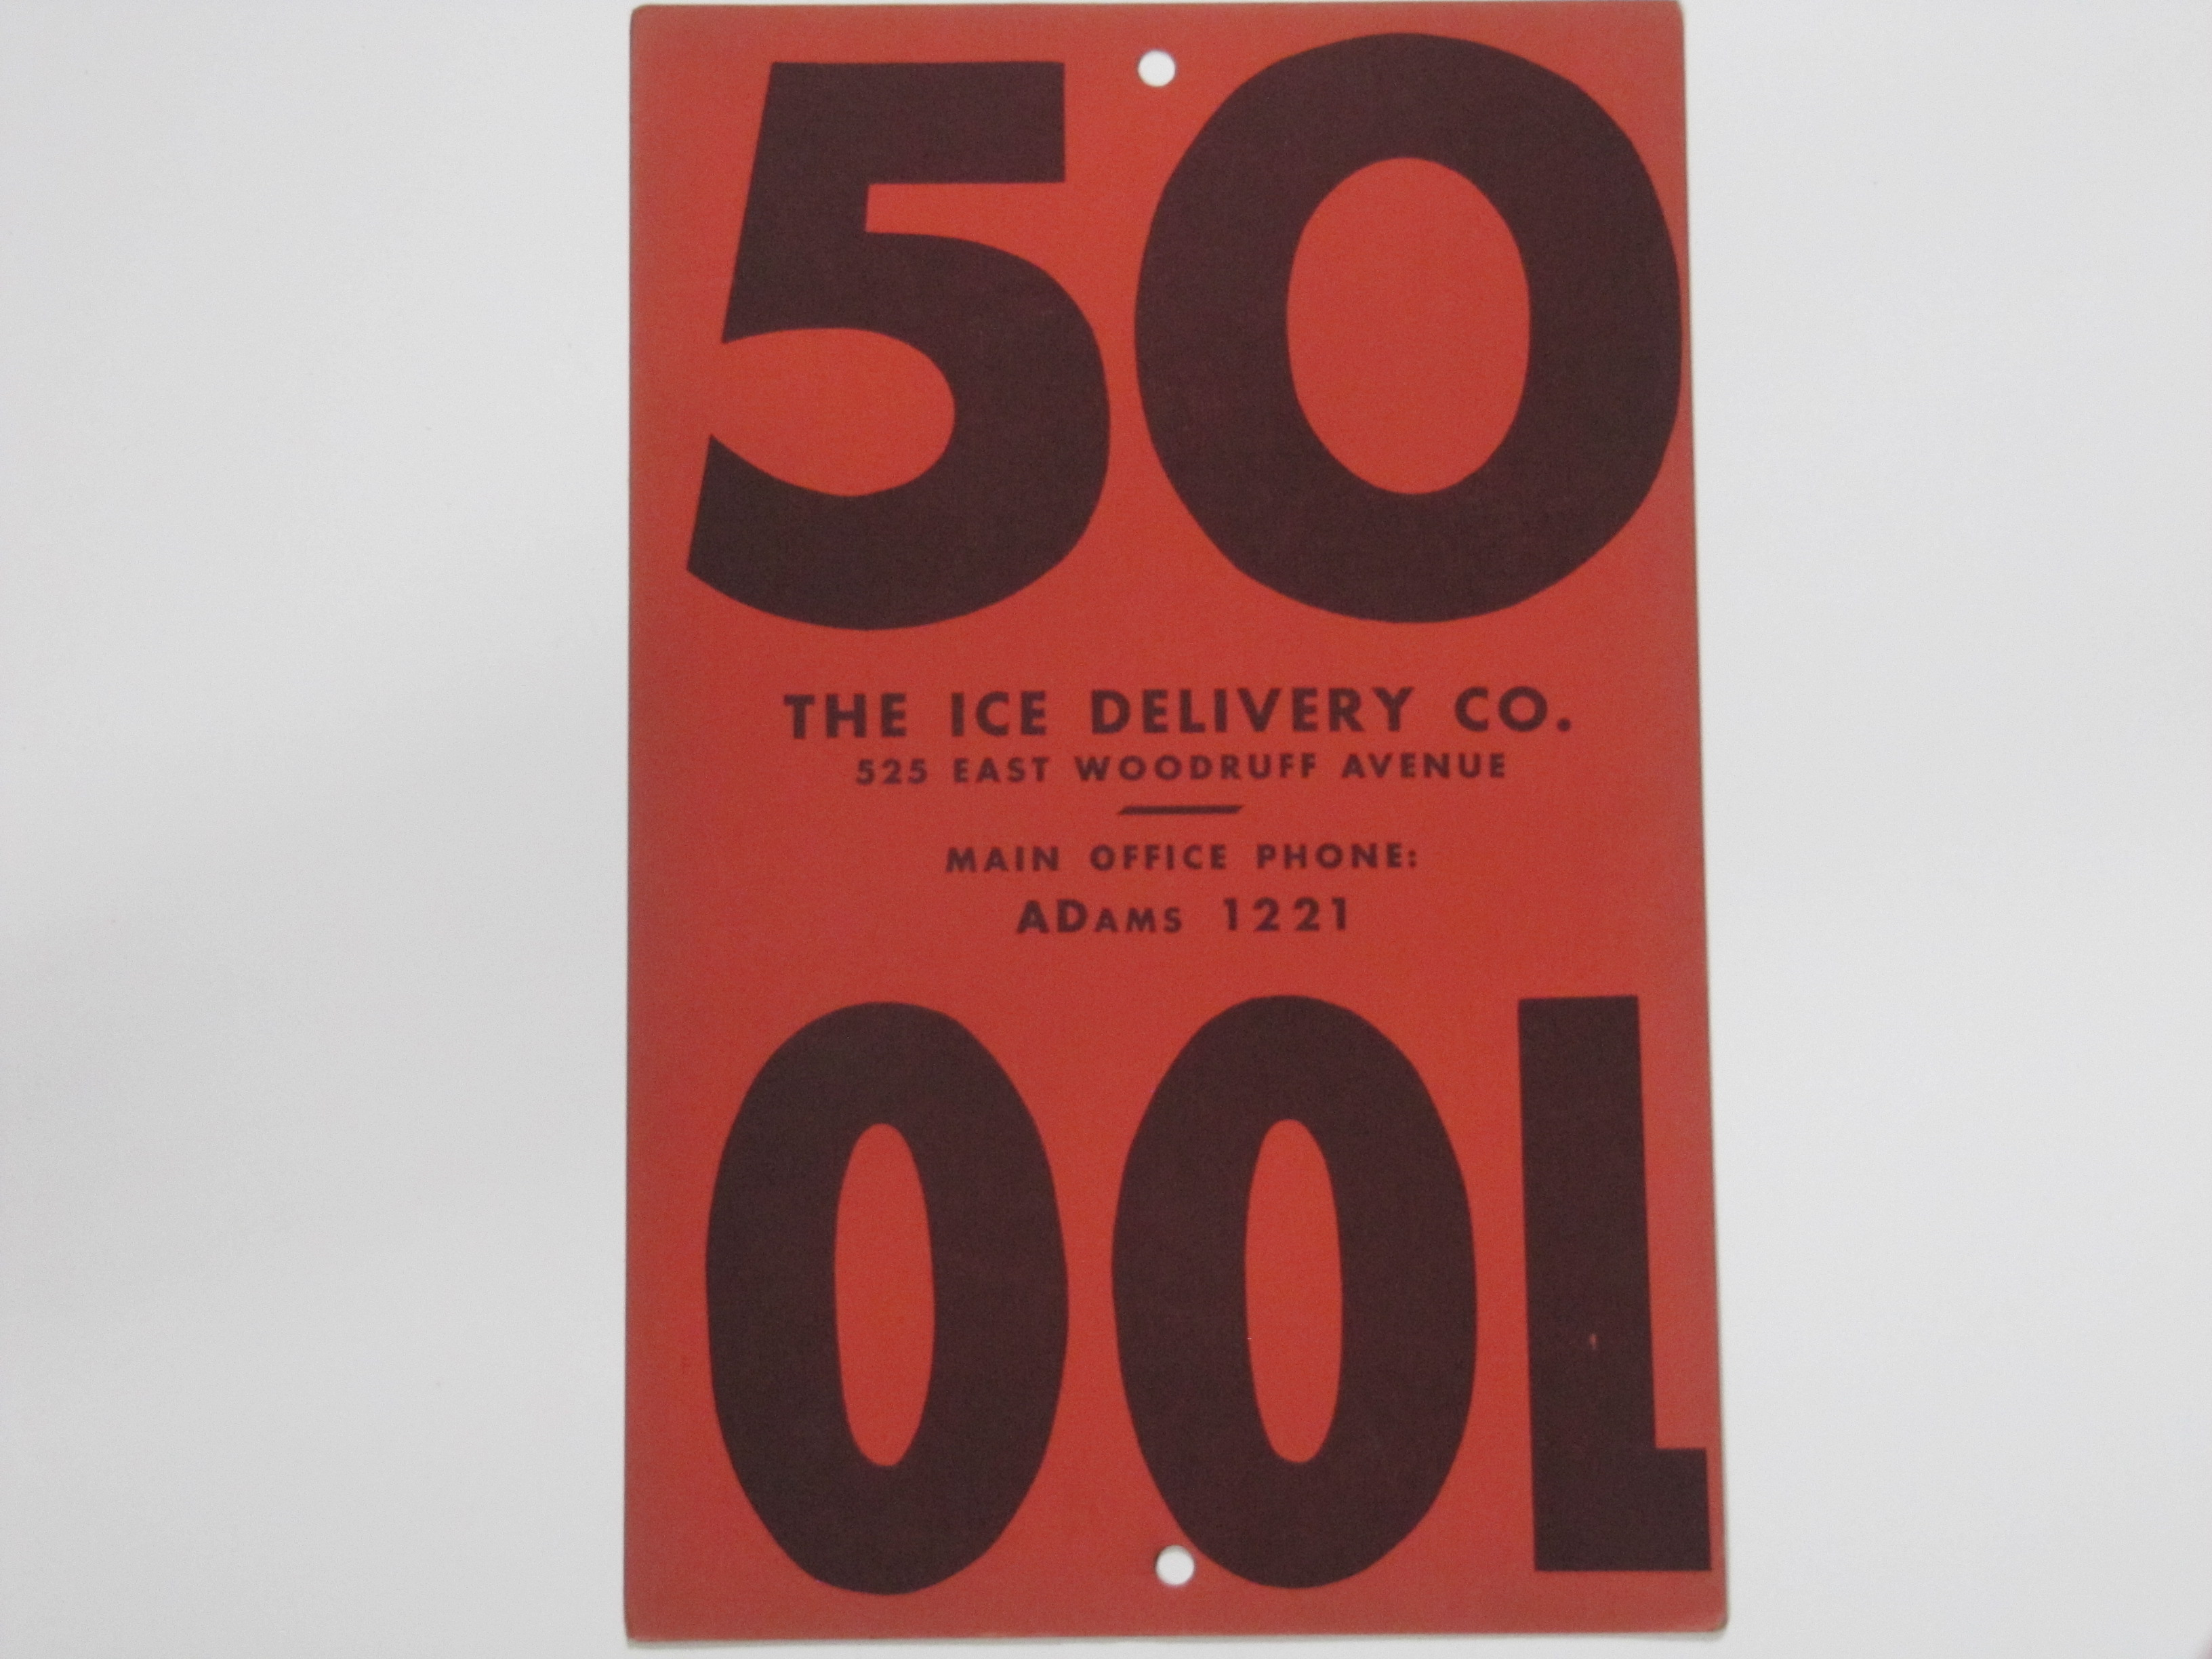 Ice Delivery Co. 50_100 (RED)